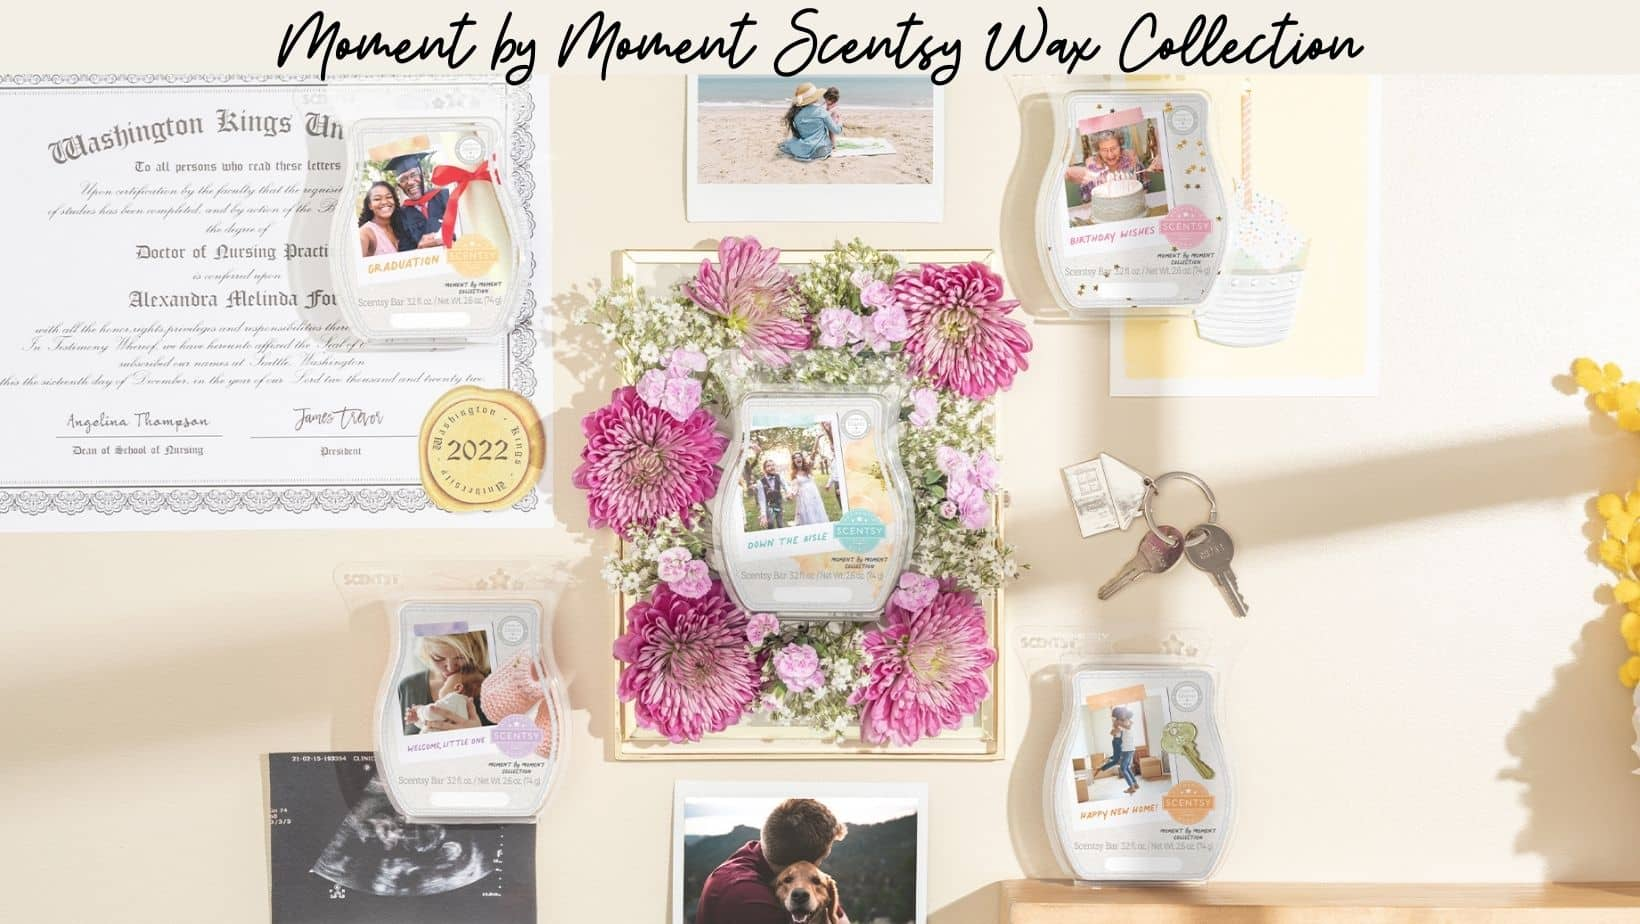 Moment by Moment Scentsy Wax Collection 1